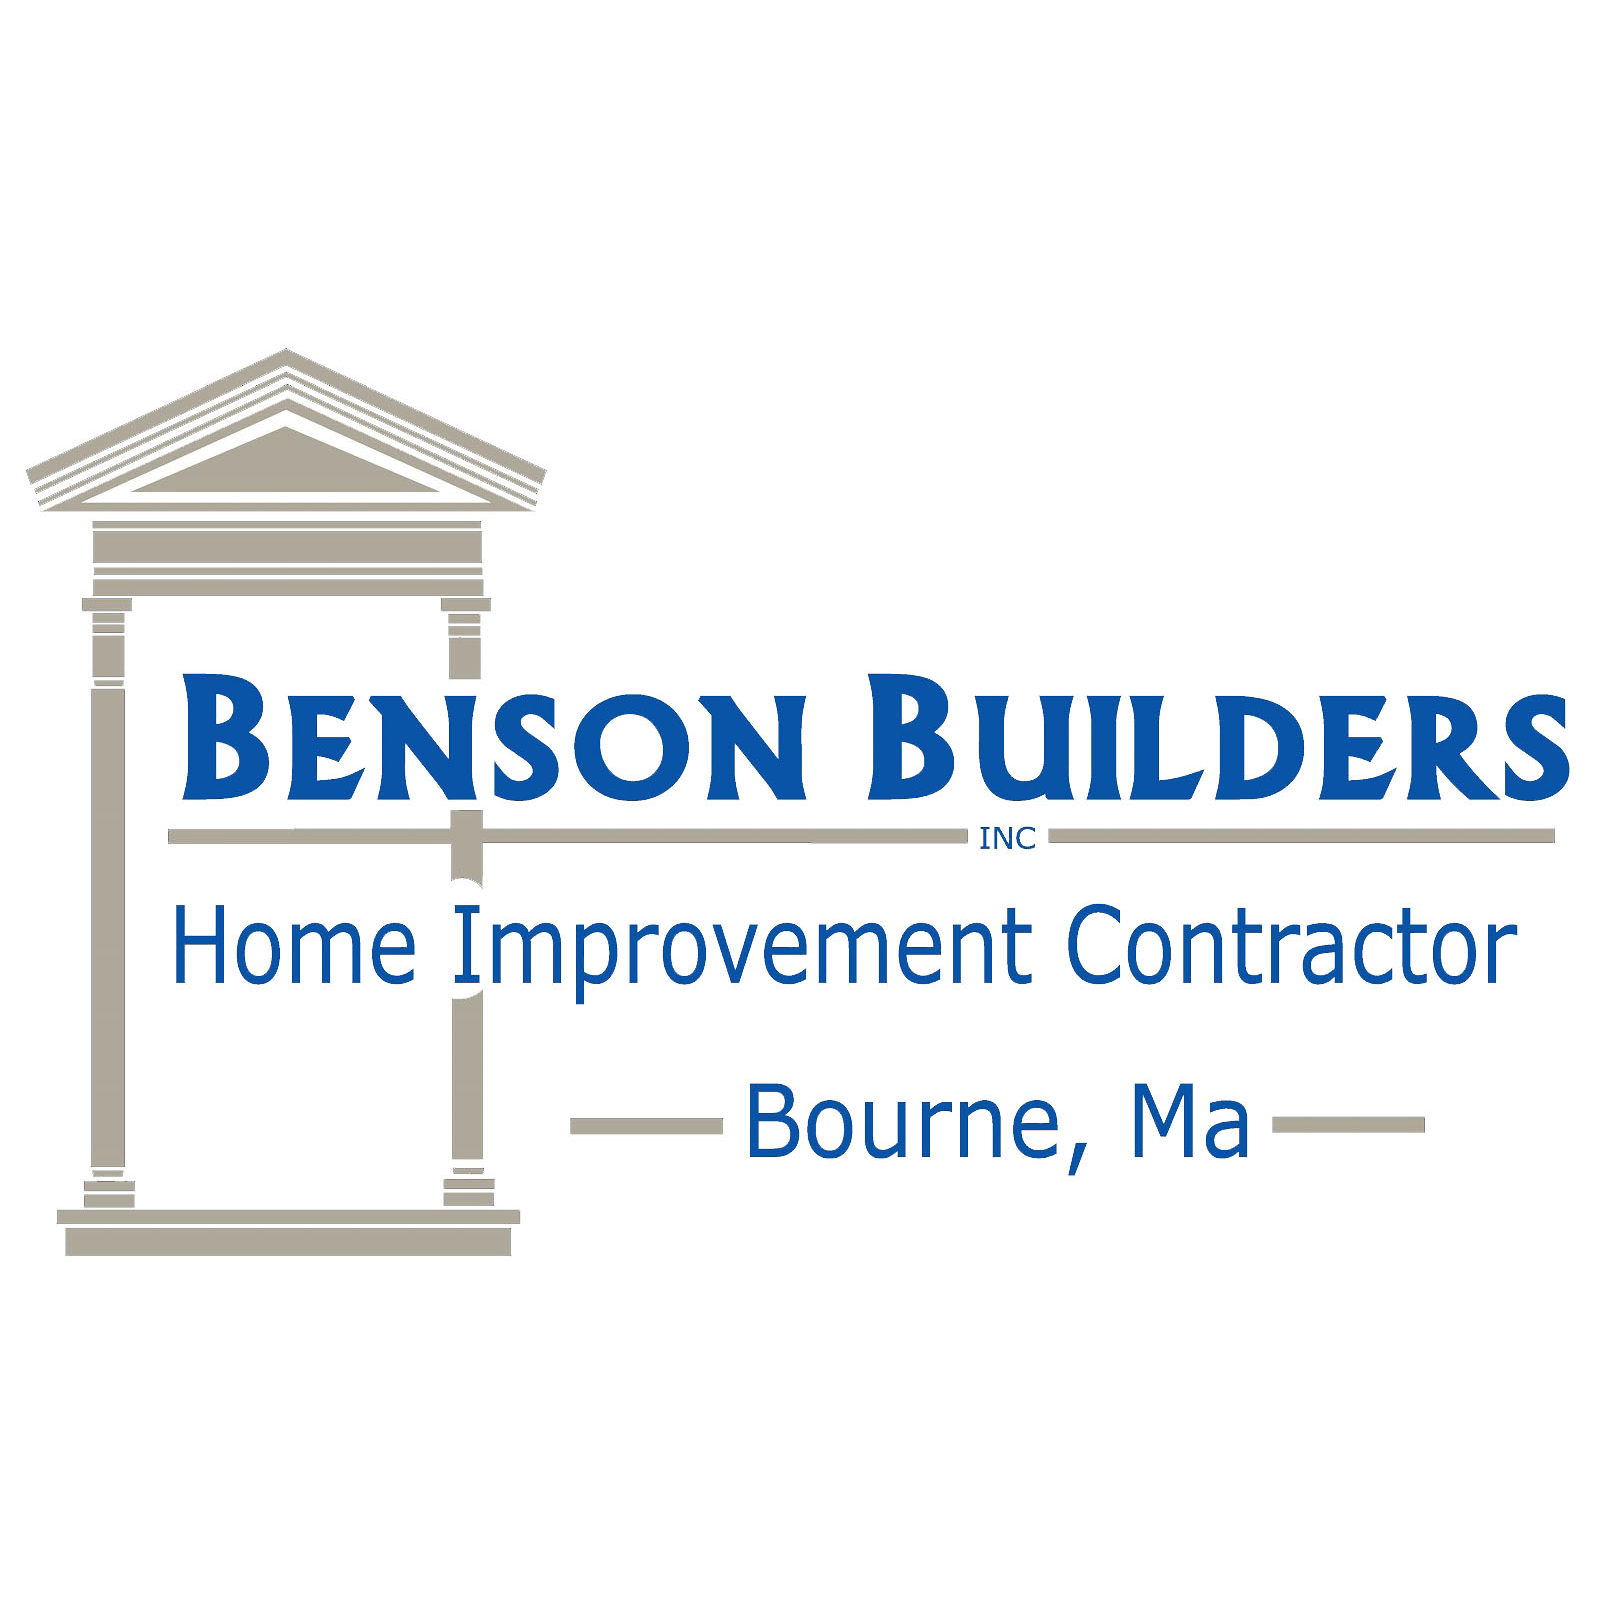 Benson builders inc coupons near me in 8coupons for Local builders near me